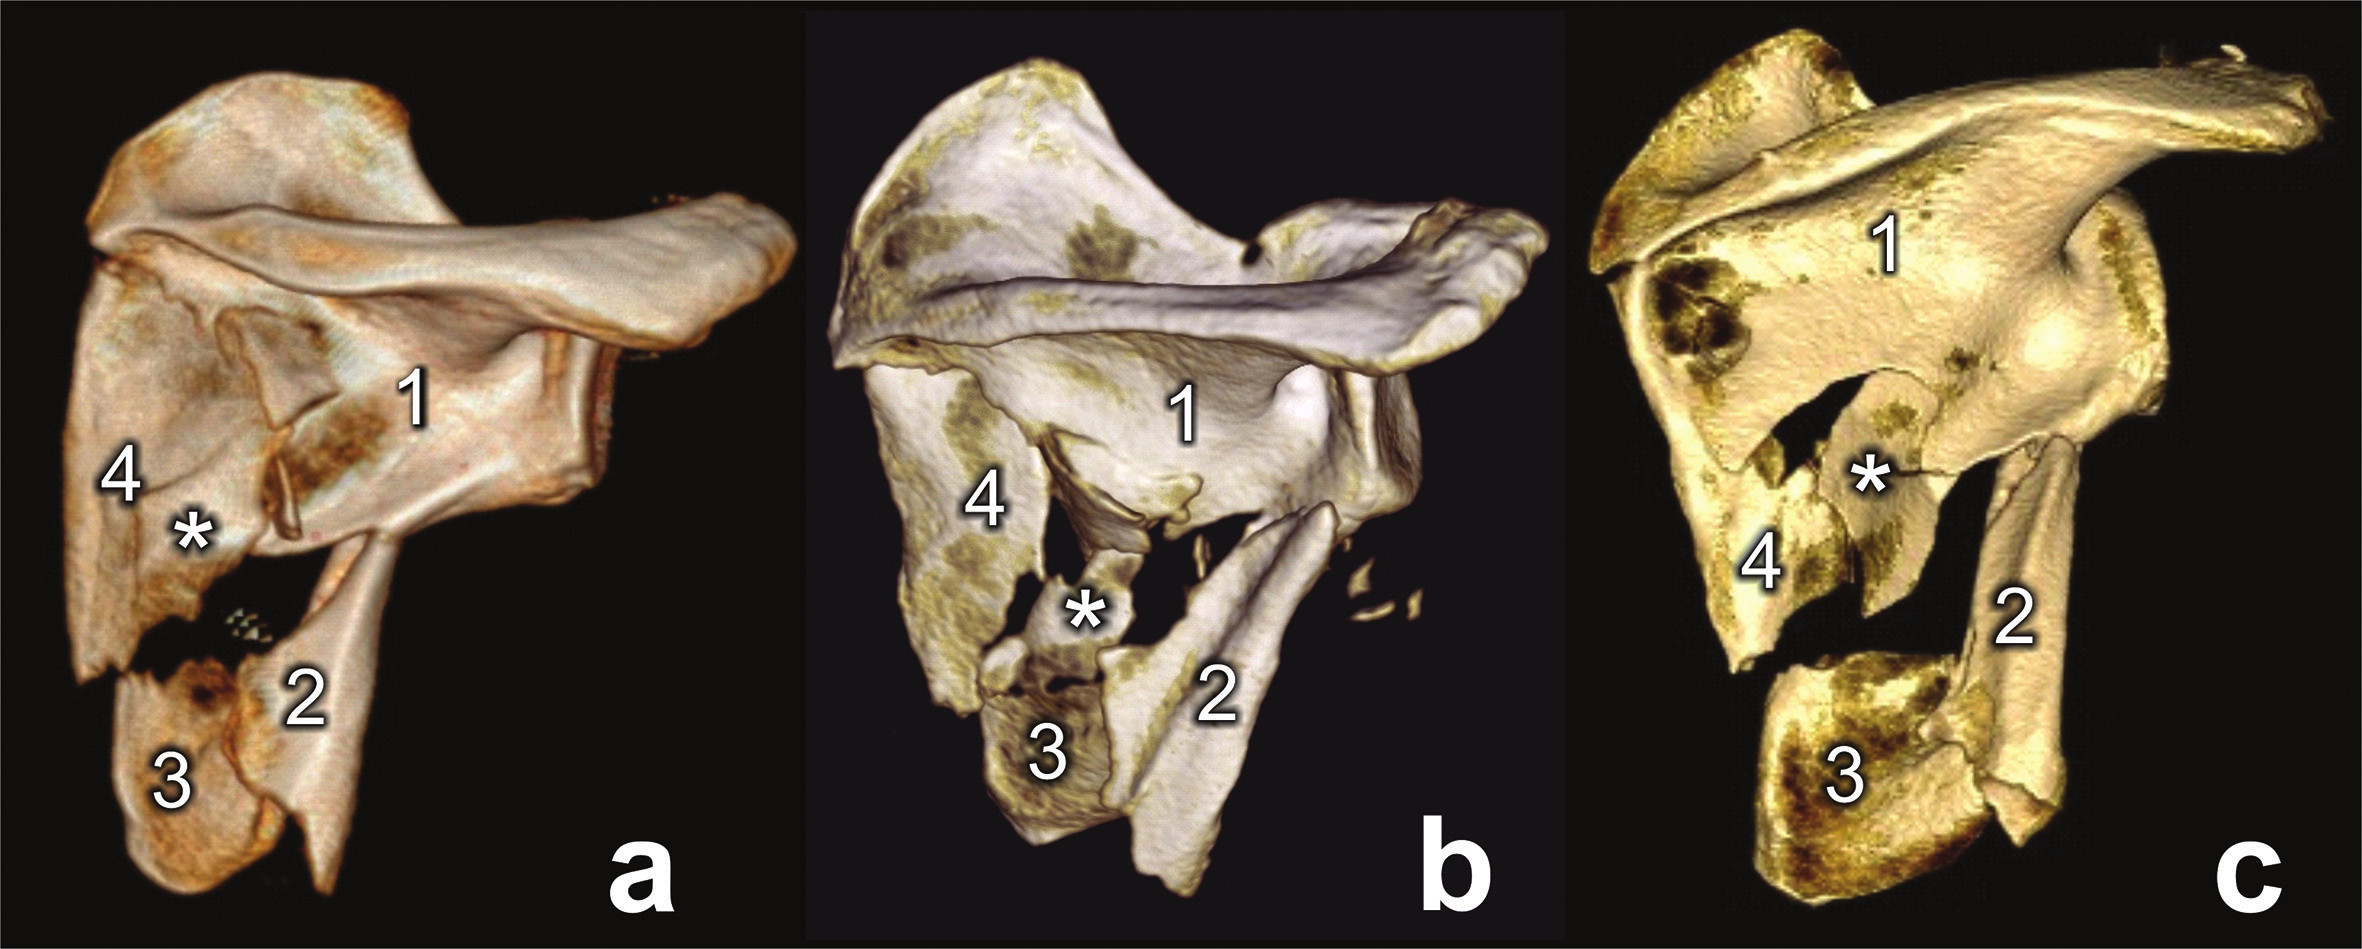 Types of comminuted fracture of lateral pillar (a, b, c) 1 – glenoid fragment, 2 – lateral border fragment, 3 – inferior angle fragment, 4 – medial border fragment, * - intercalary fragment.